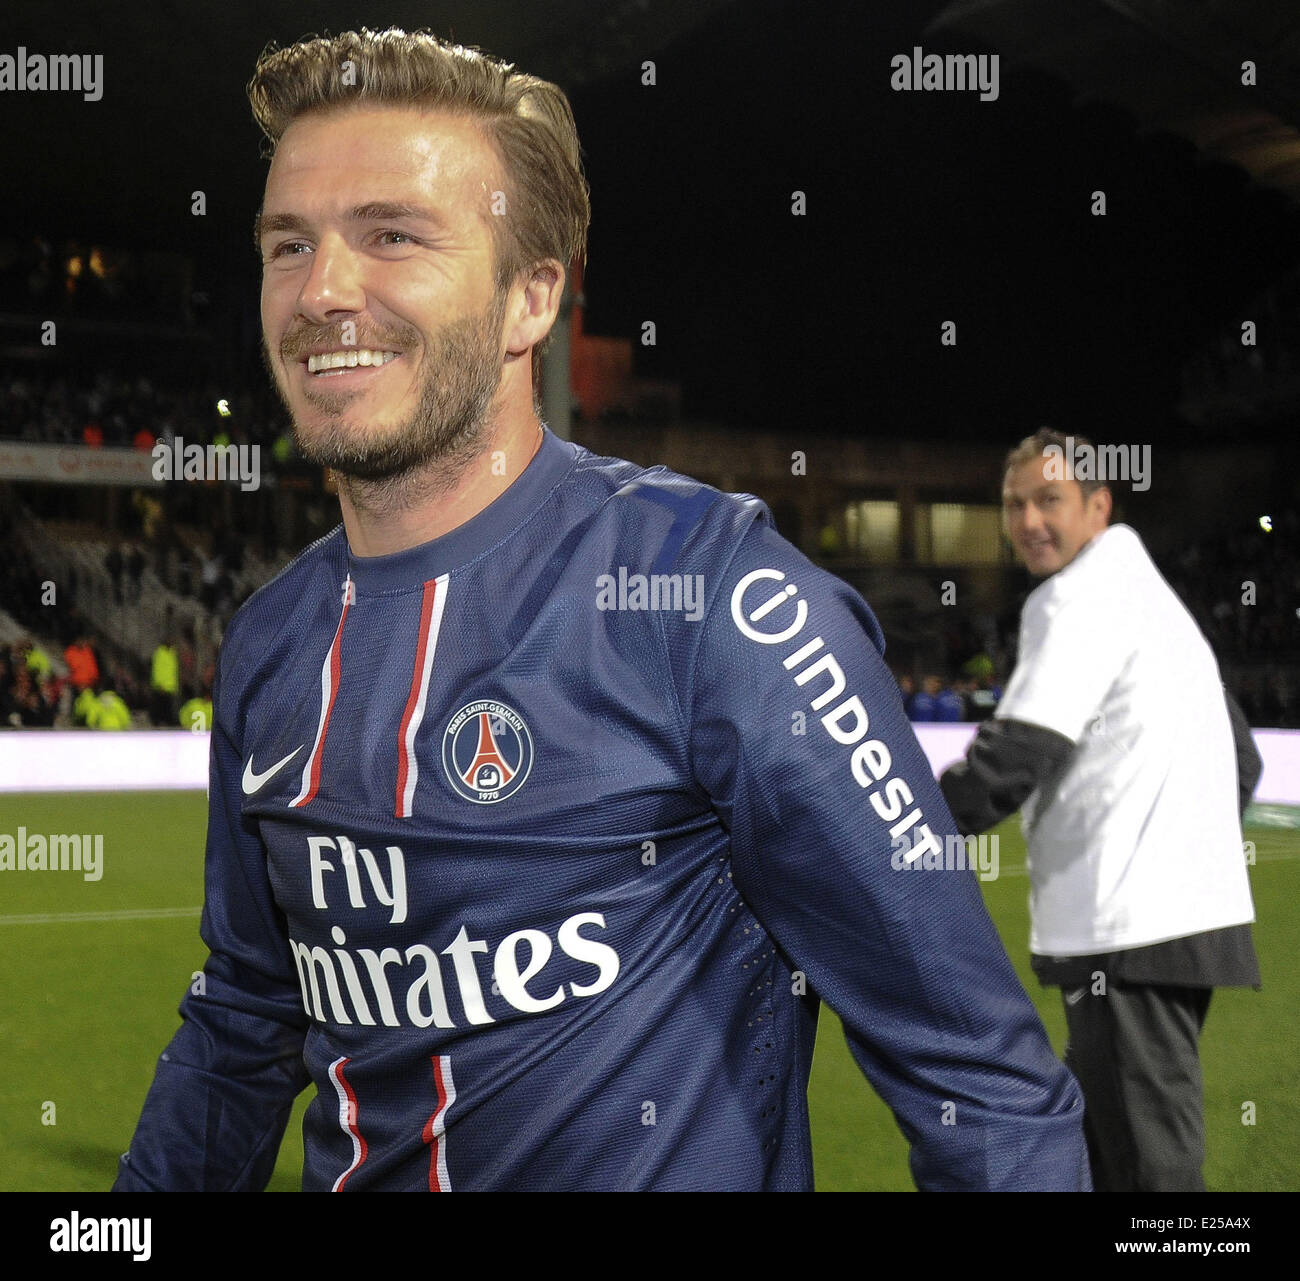 Paris Saint-Germain (PSG) vs. Olympique Lyonnais at Stade de Gerland  Featuring: David Beckham Where: Lyon, France Stock Photo